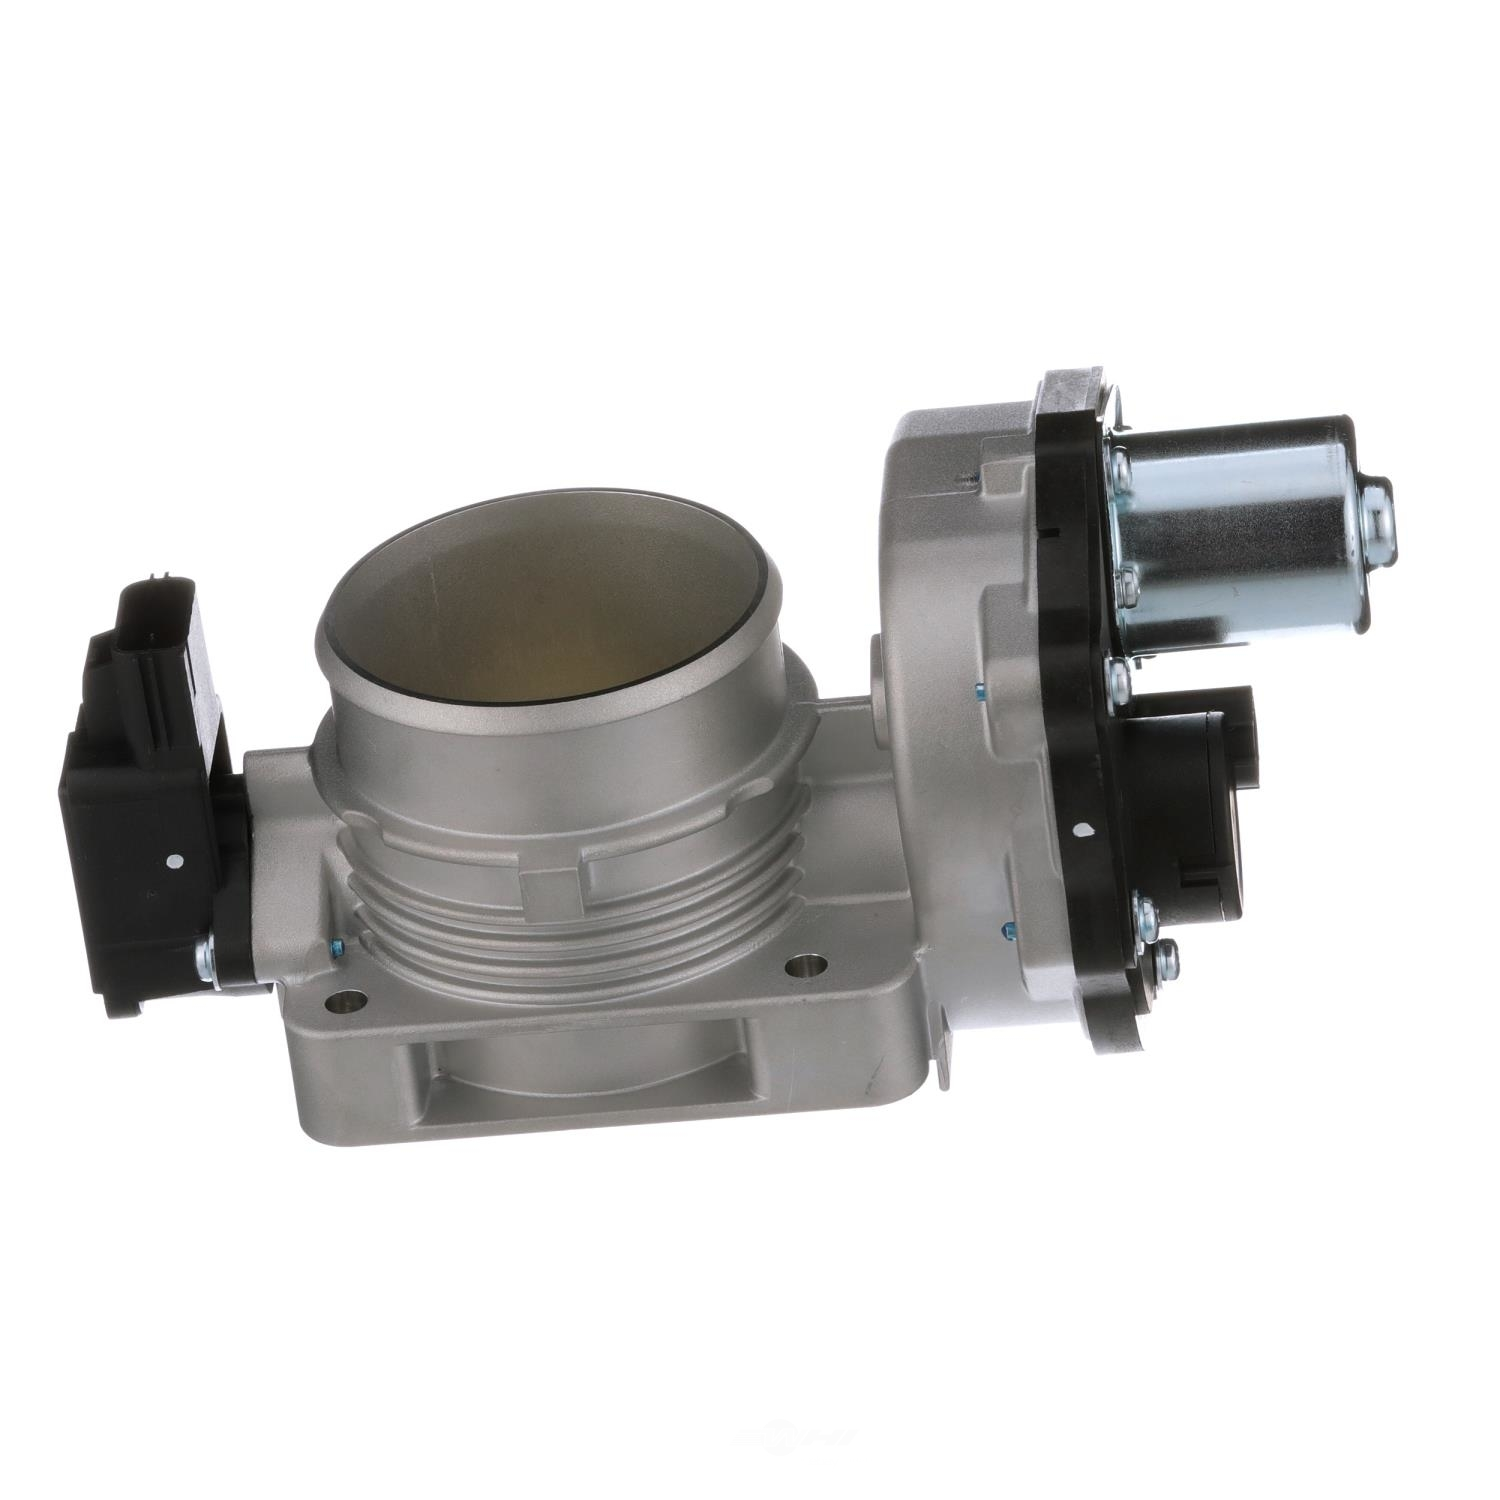 TECHSMART - Fuel Injection Throttle Body - TCS S20020